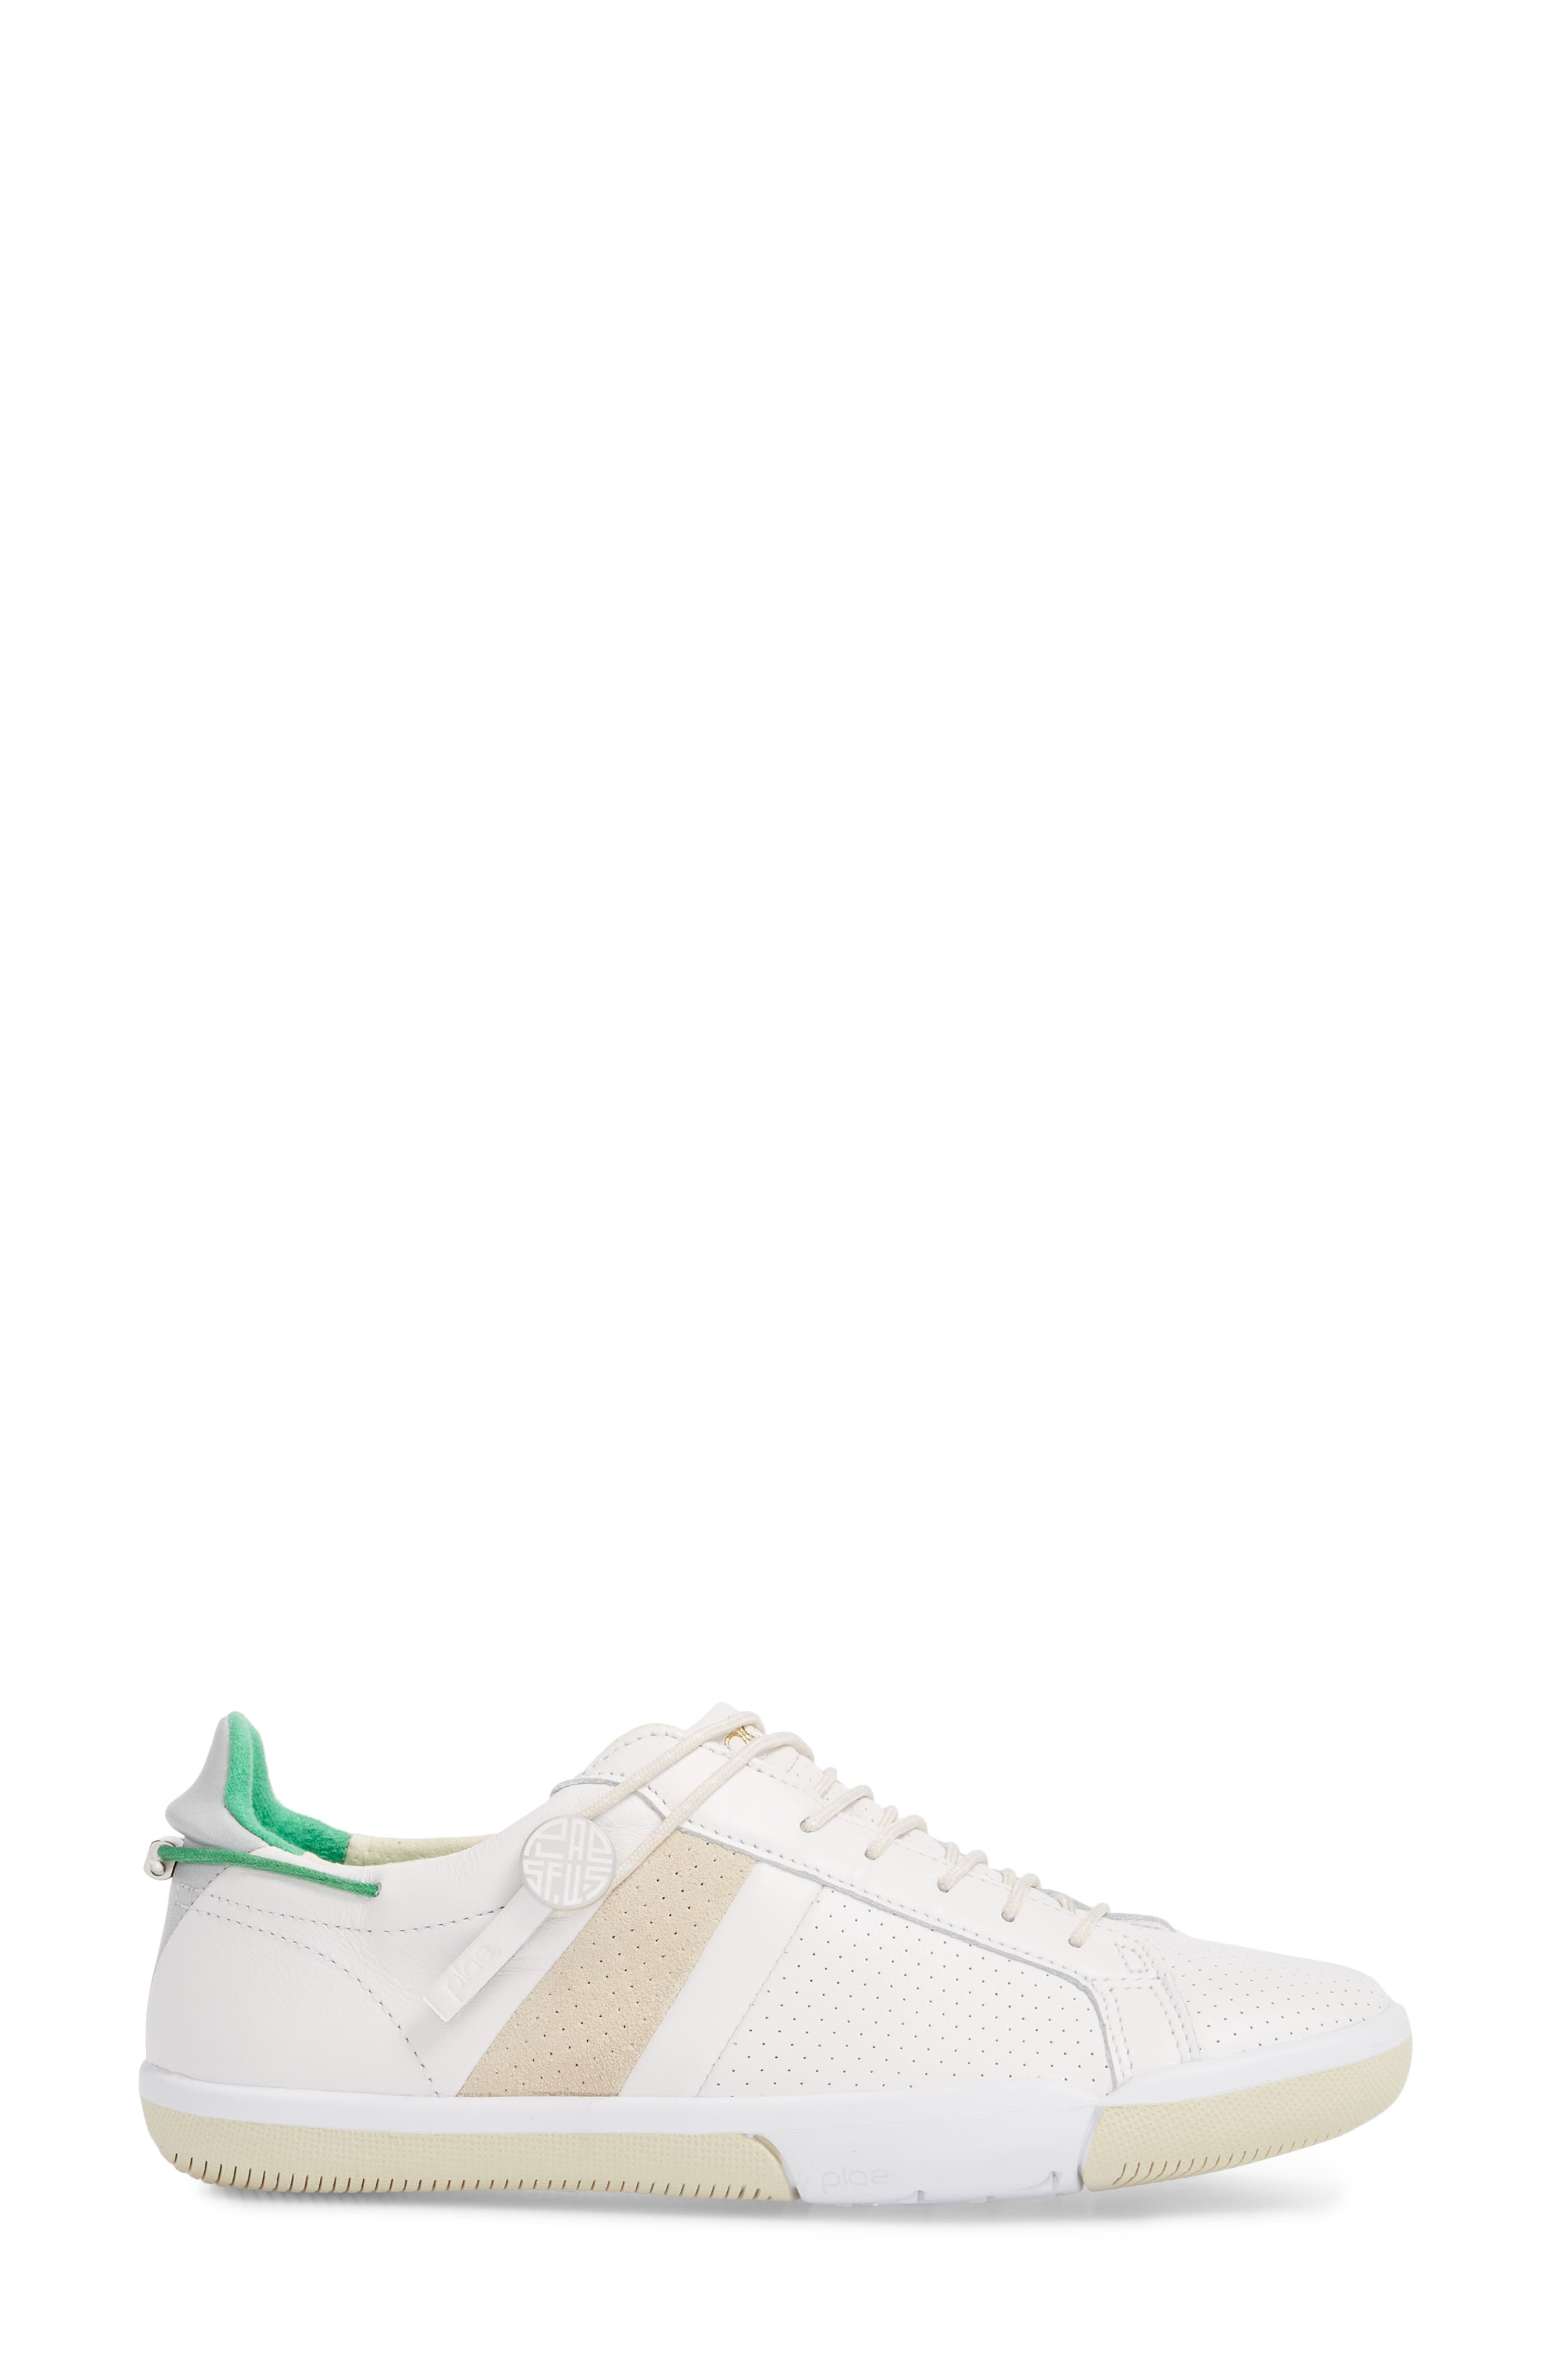 Mulberry Sneaker,                             Alternate thumbnail 3, color,                             White Leather